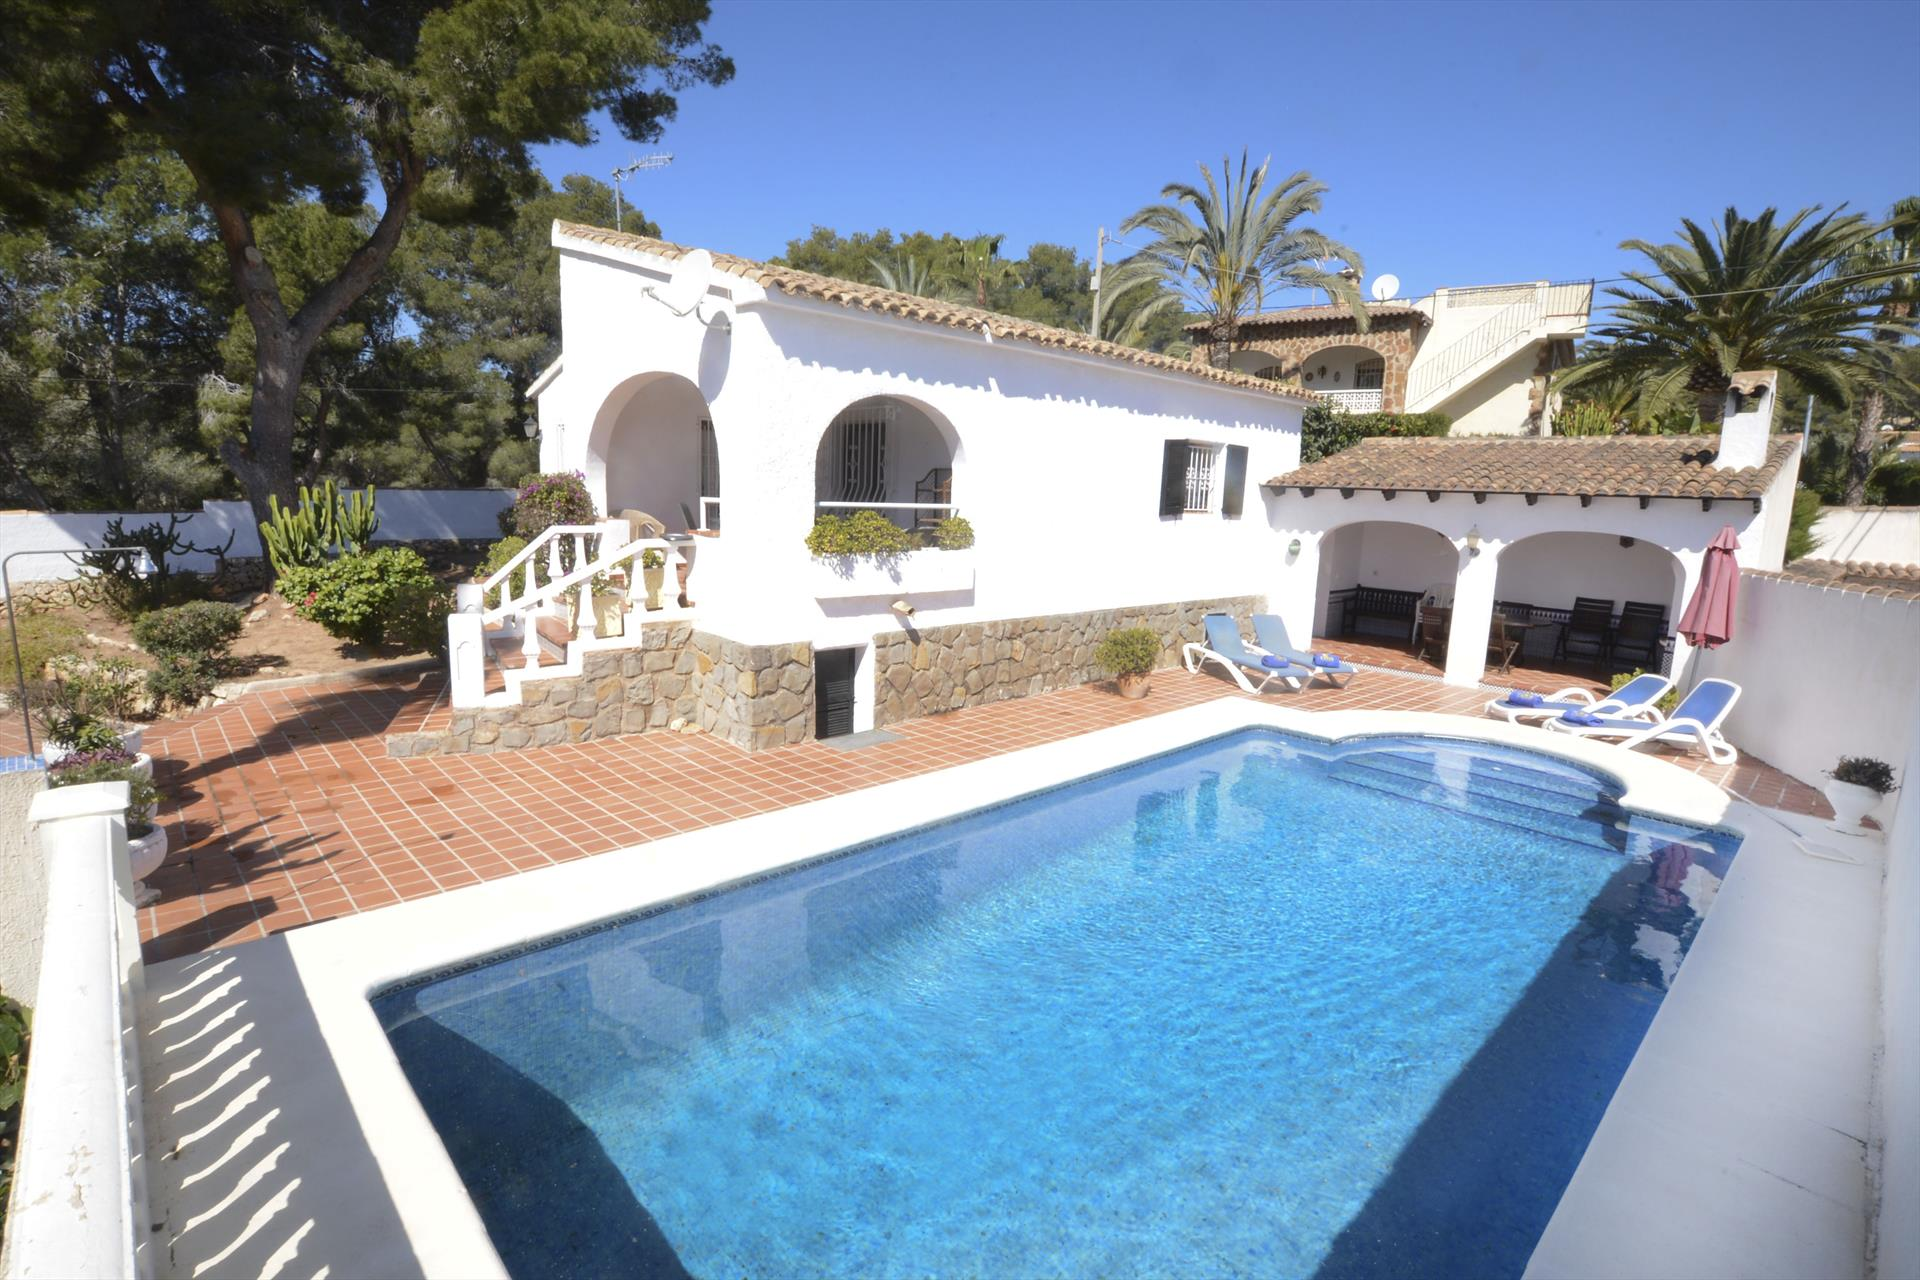 Villa Wally, Villa  with private pool in Benissa, on the Costa Blanca, Spain for 5 persons.....